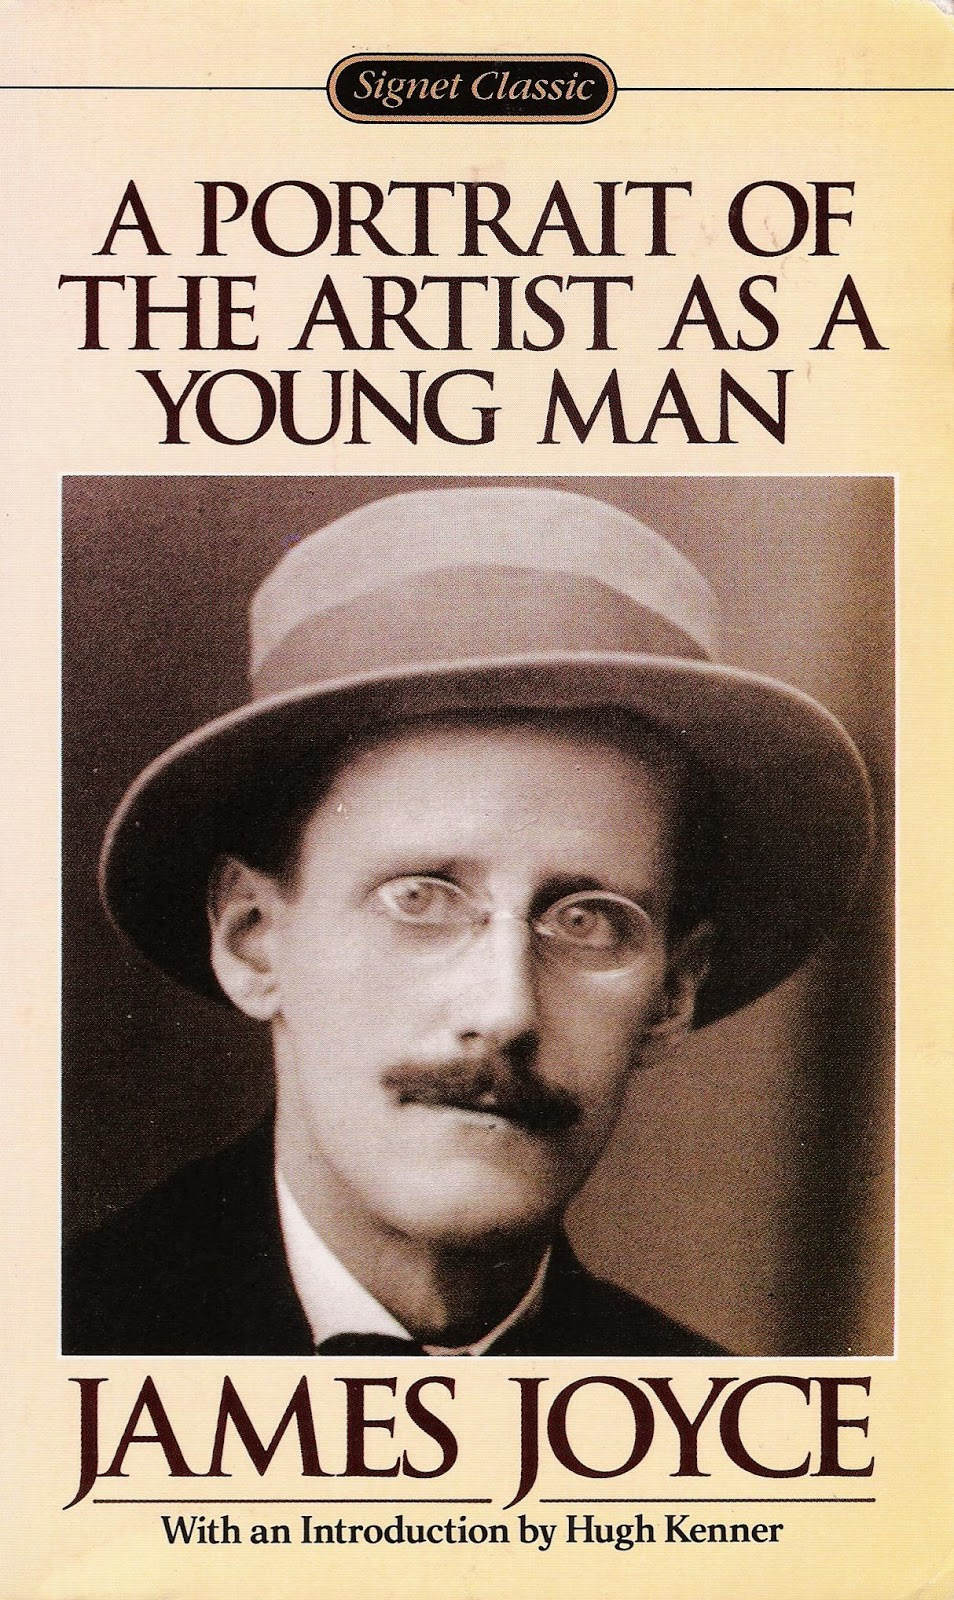 a portrait of the artist as a young man essays Essays and criticism on james joyce's a portrait of the artist as a young man - critical evaluation.